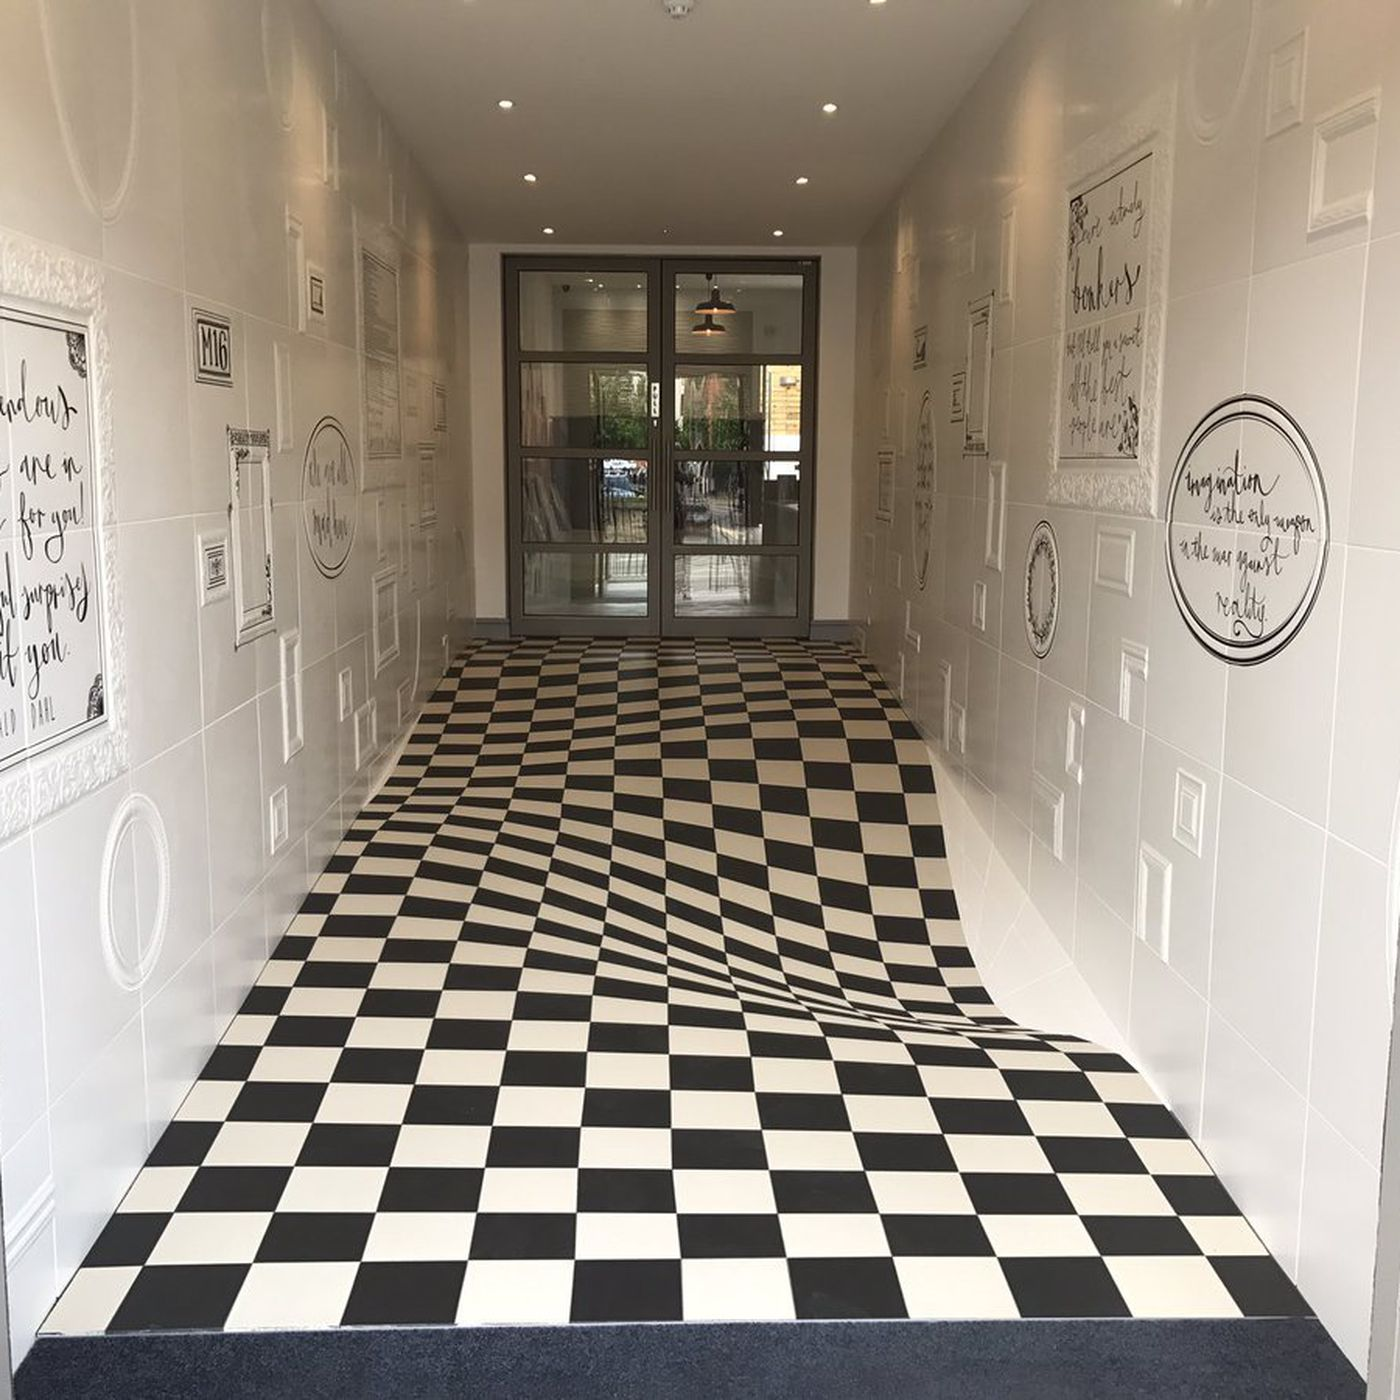 Tile design uses optical illusion to slow people down curbed ppazfo